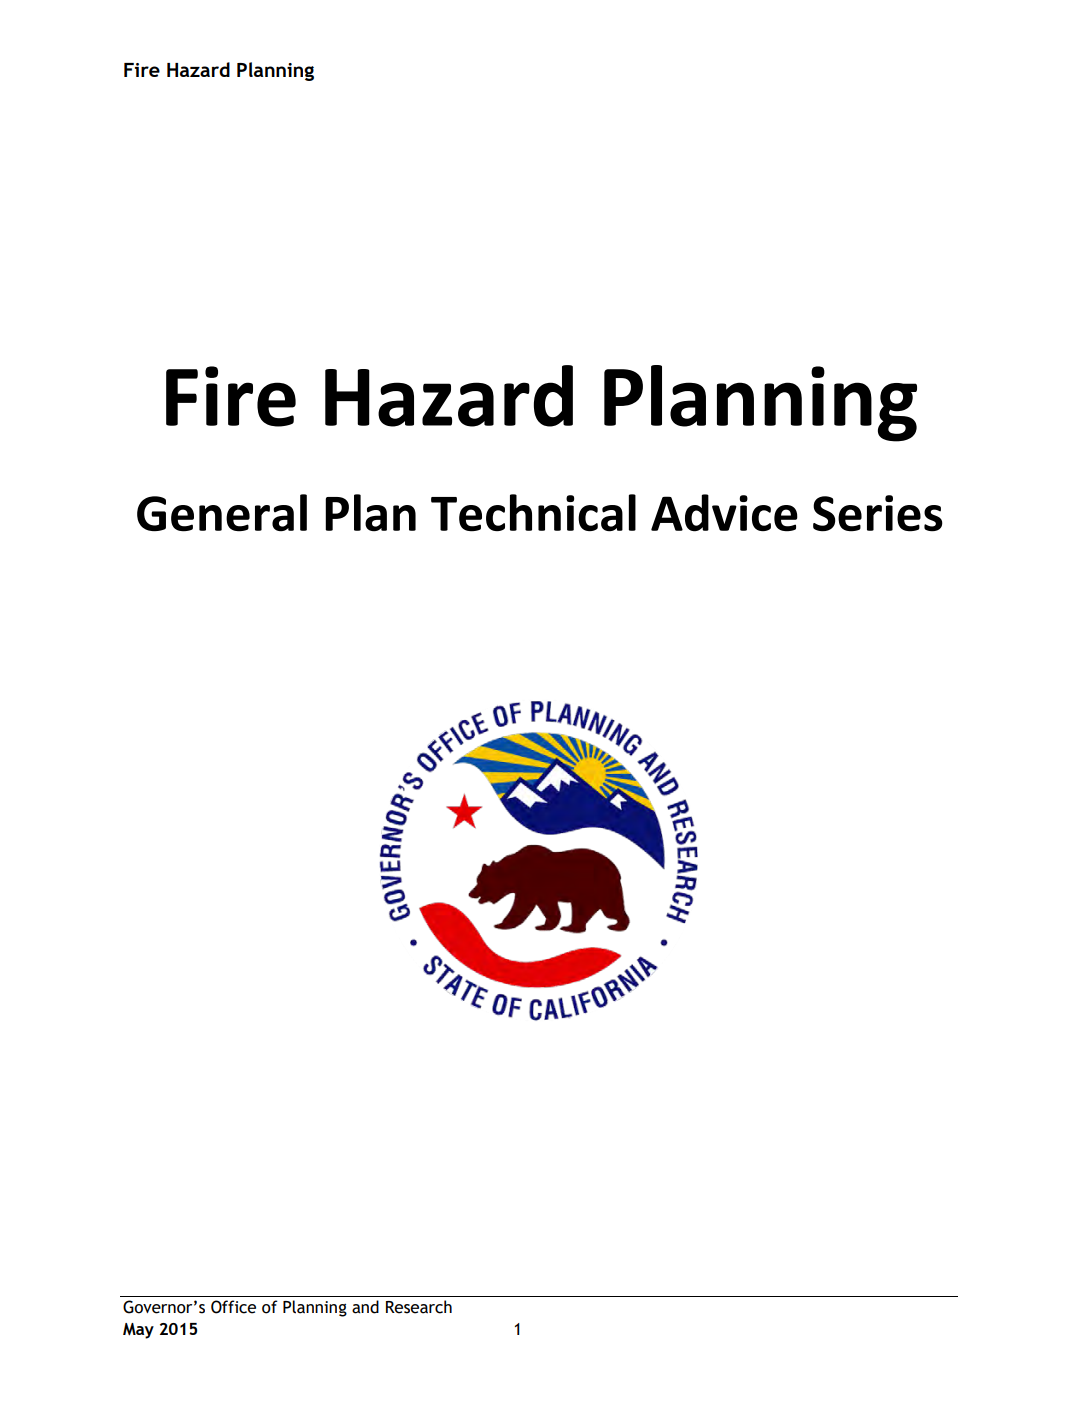 Fire Hazard Planning – General Plan Technical Advice Series Cover